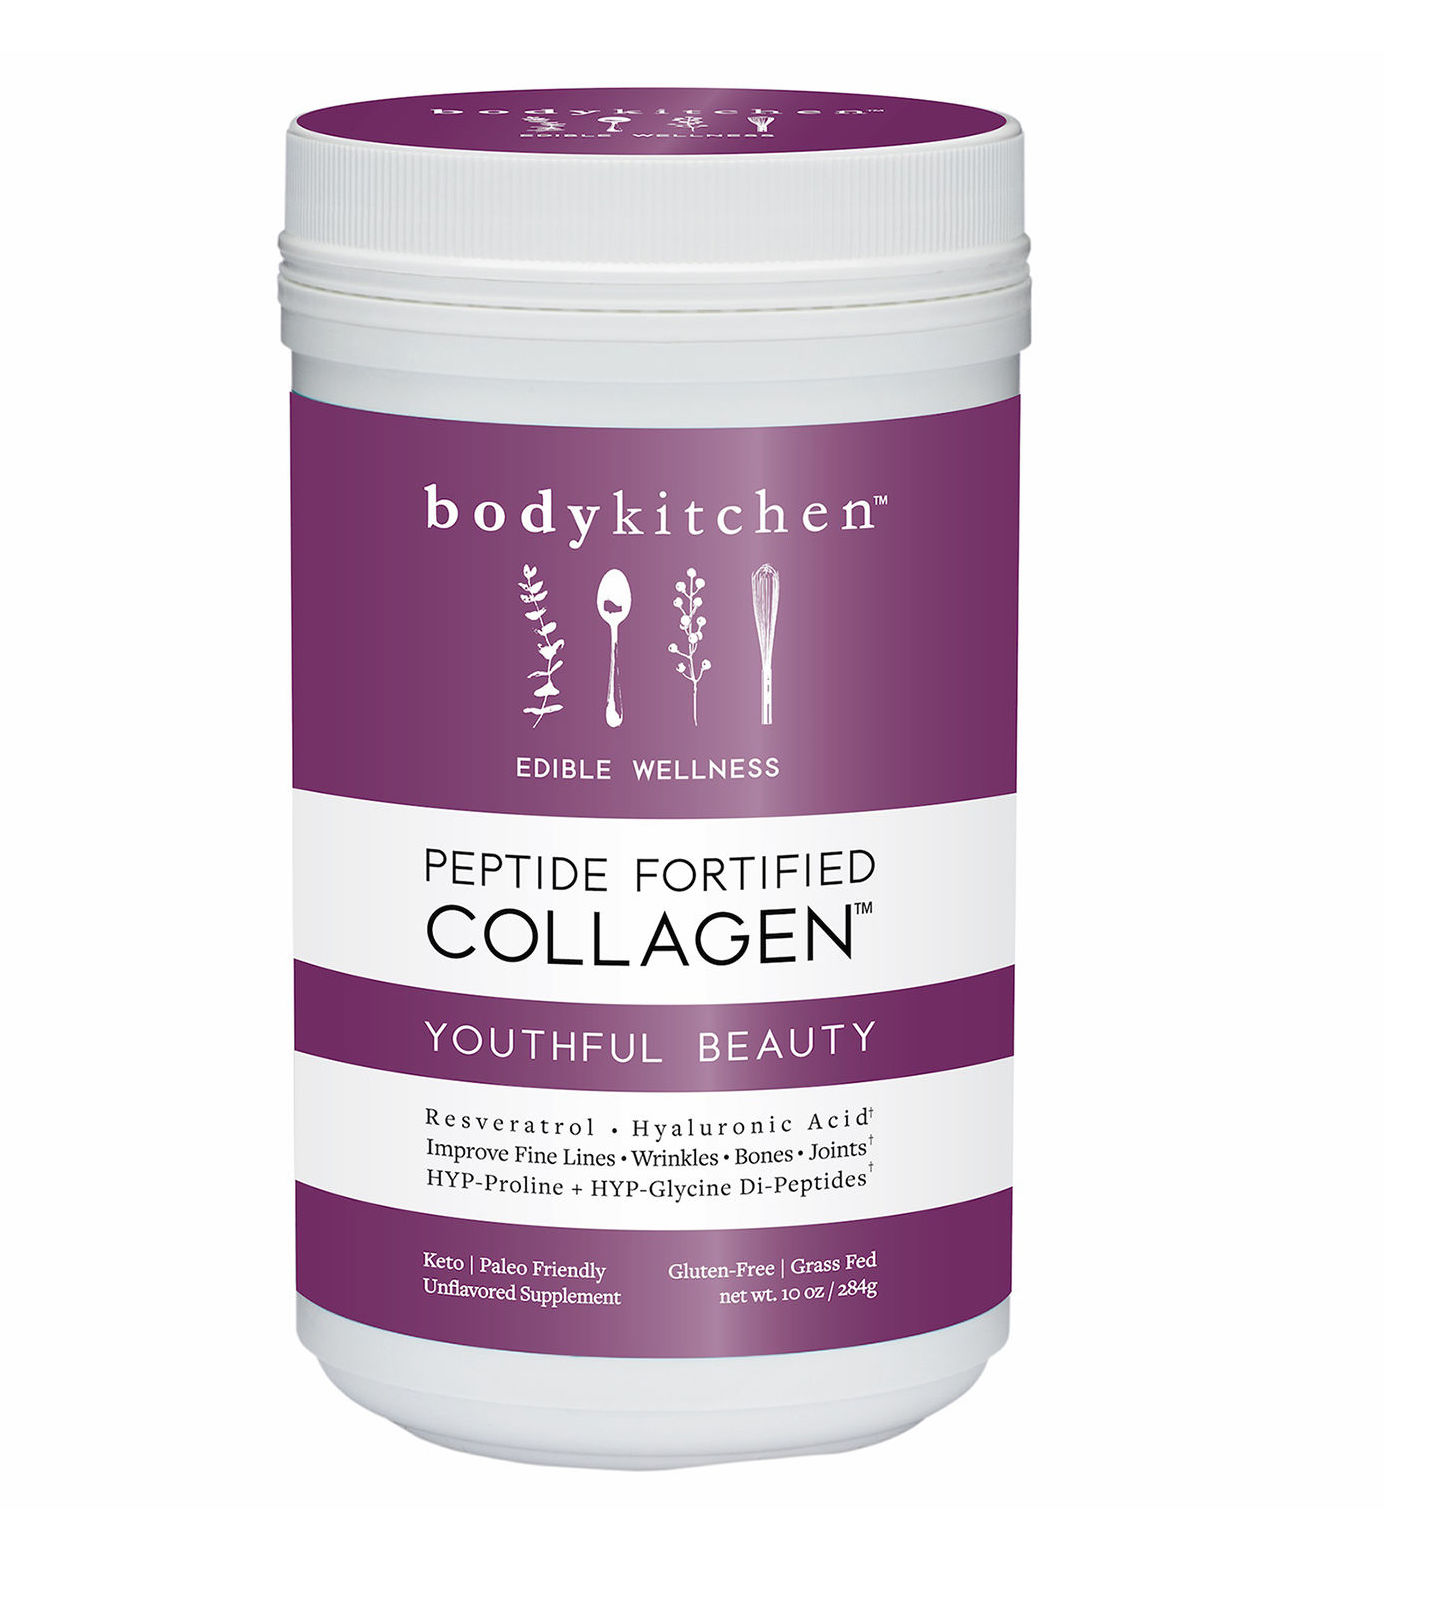 Are Collagen Supplements Safe? Experts Explain How They Work